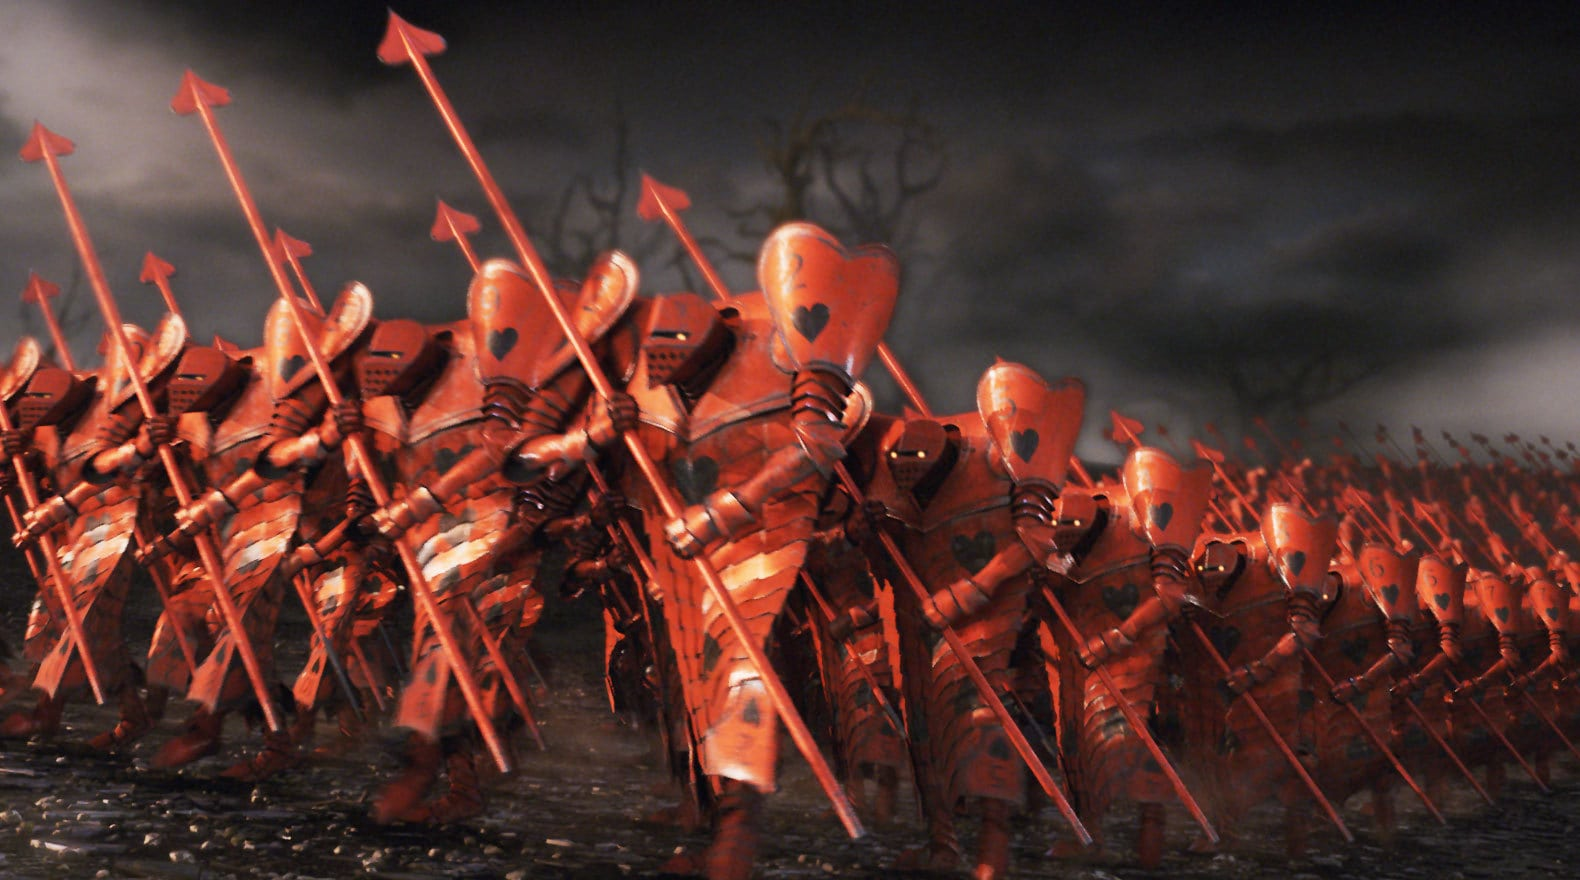 The Red Queen's Army